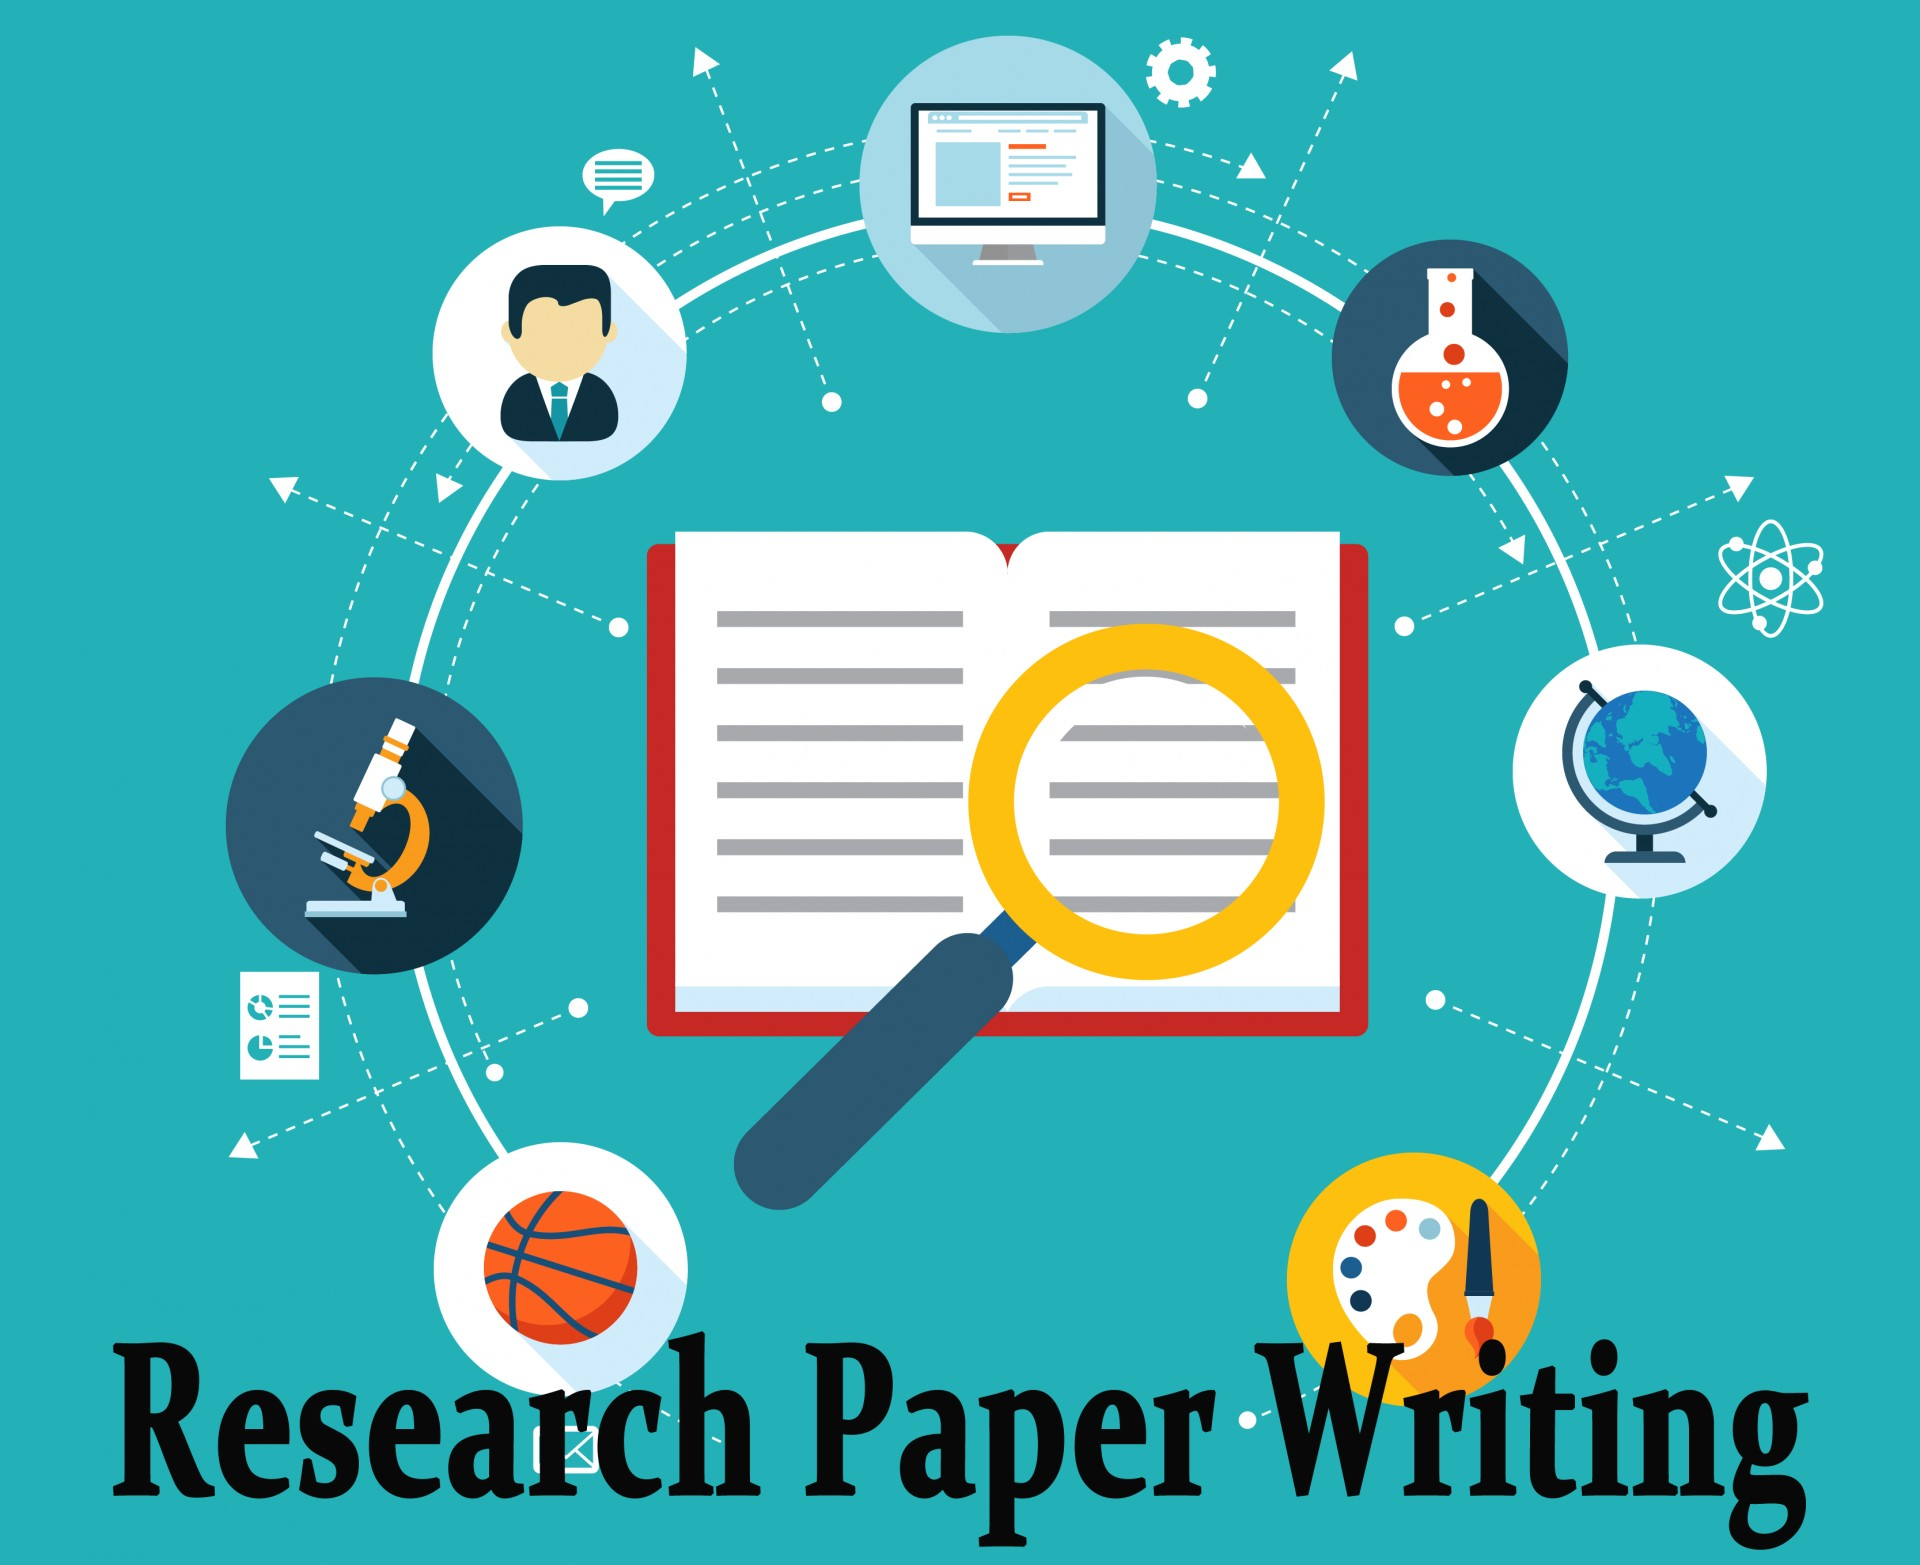 014 503 Effective Research Writing Researchs Fascinating Papers Paper Format Example Pdf Software Free Download Ppt 1920